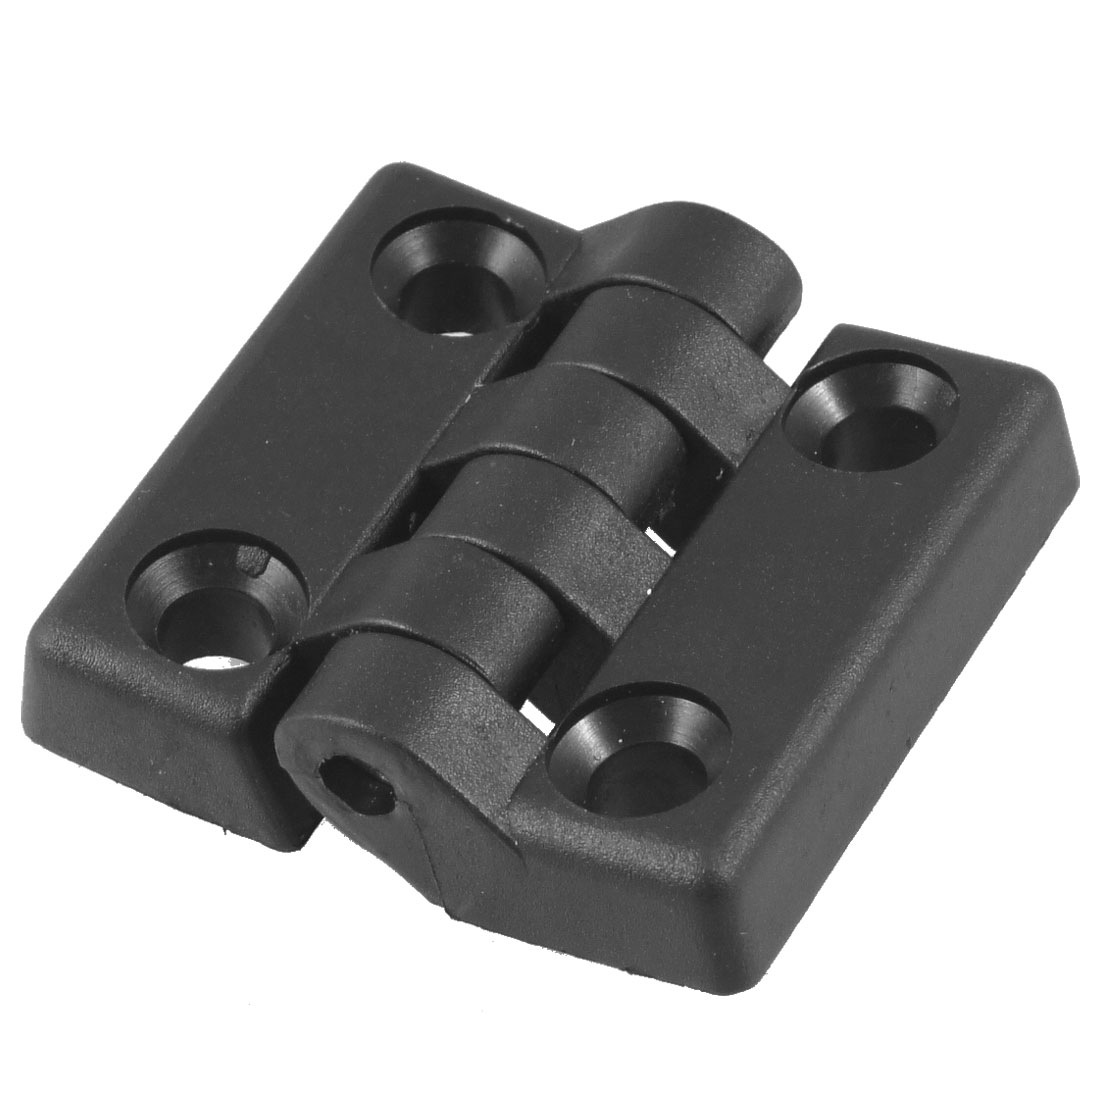 50mm x 48mm Countersunk Hole Plastic Cabinet Ball Bearing Hinge Black